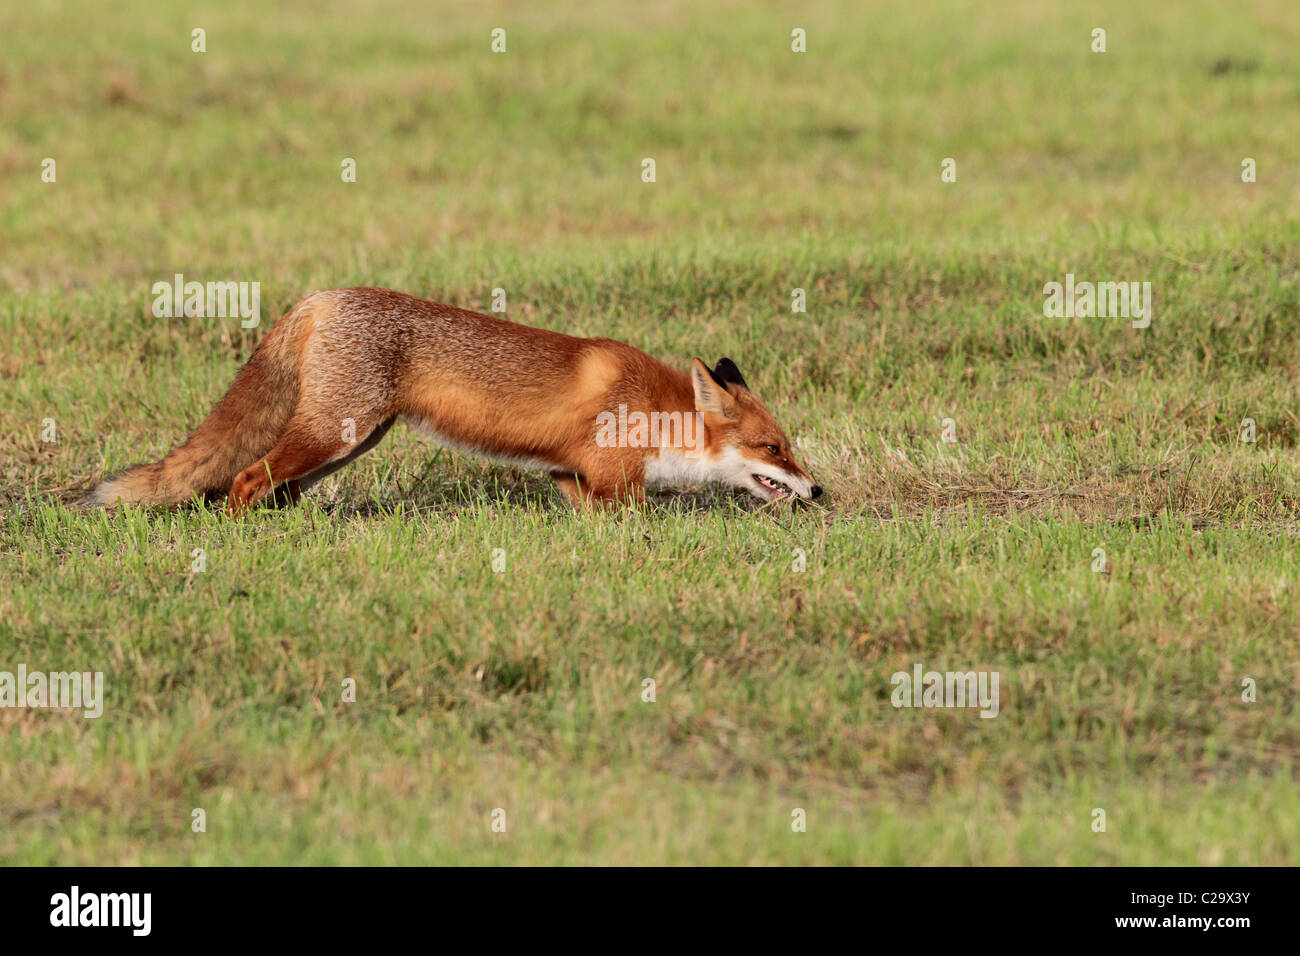 Fox with mouse - Stock Image